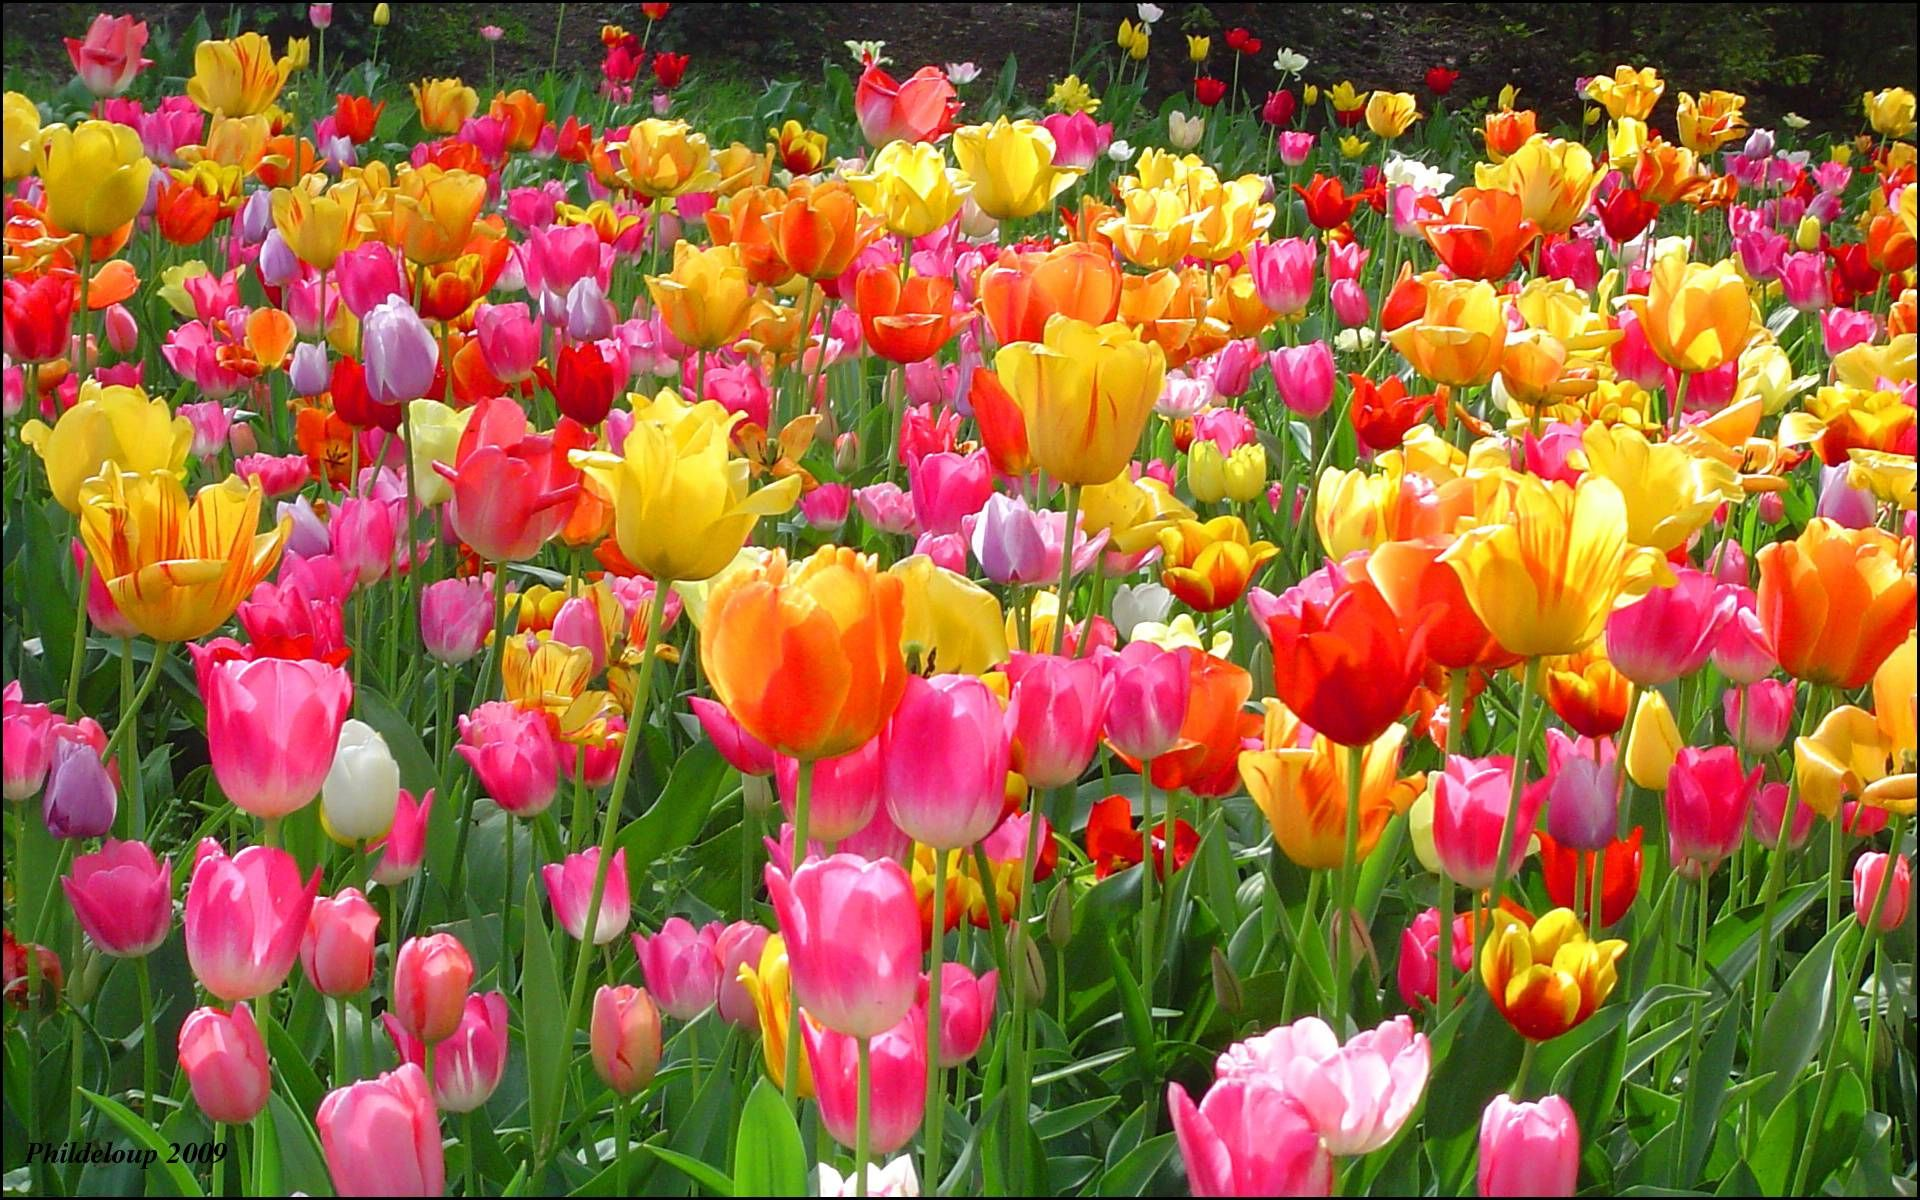 Tulip garden wallpaper full hd with high resolution wallpaper pink tulip garden wallpaper full hd with high resolution wallpaper pink thecheapjerseys